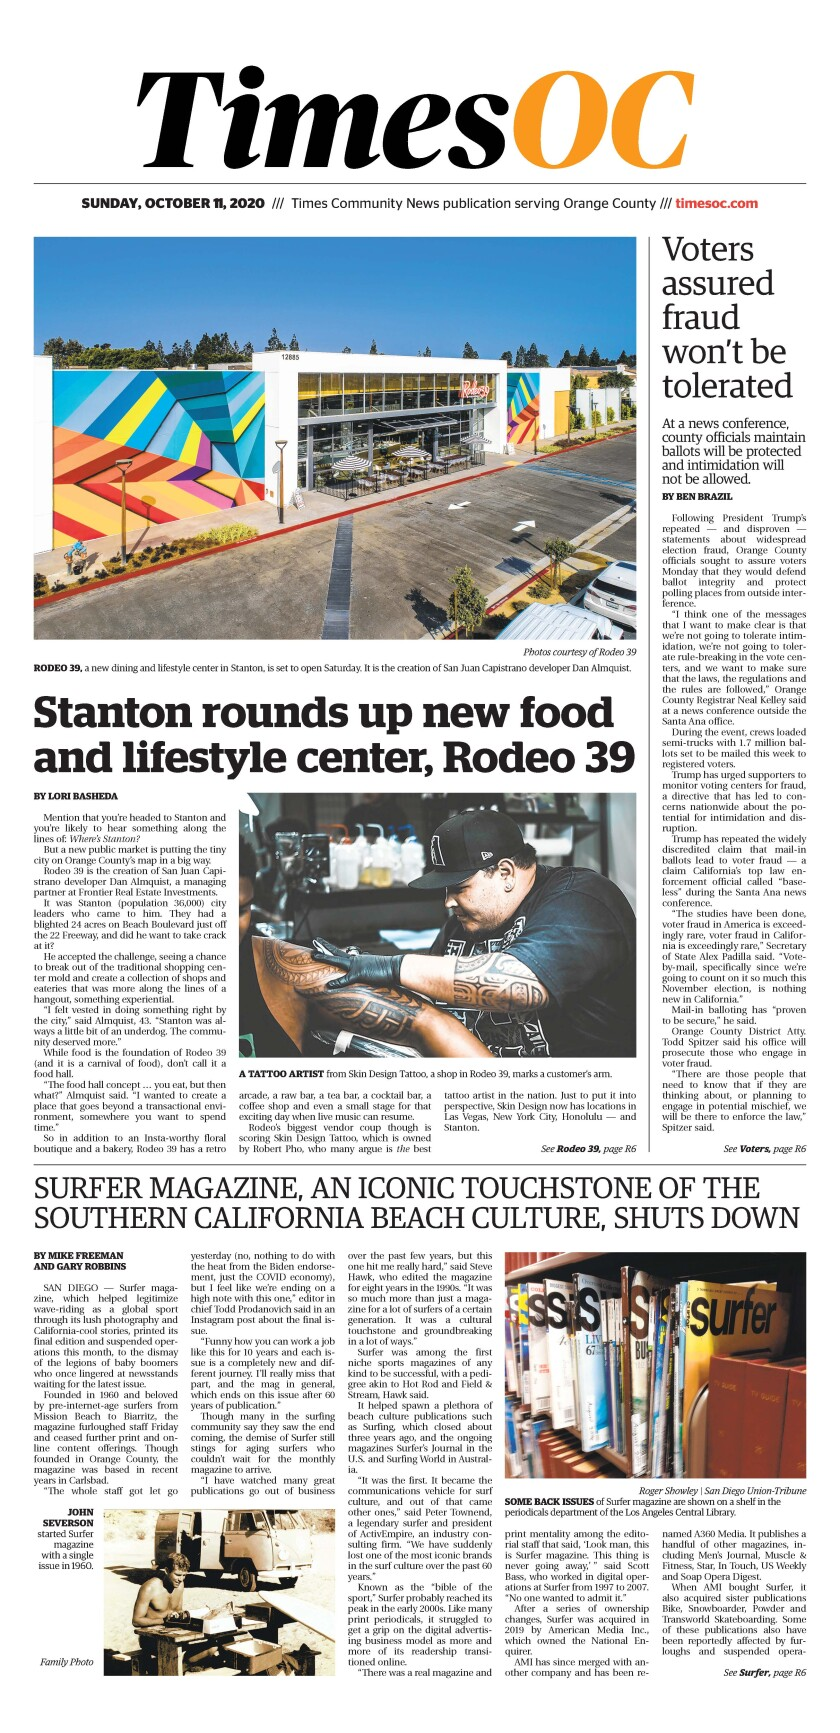 Front page of Times OC e-Newspaper for Sunday, Oct. 11, 2020